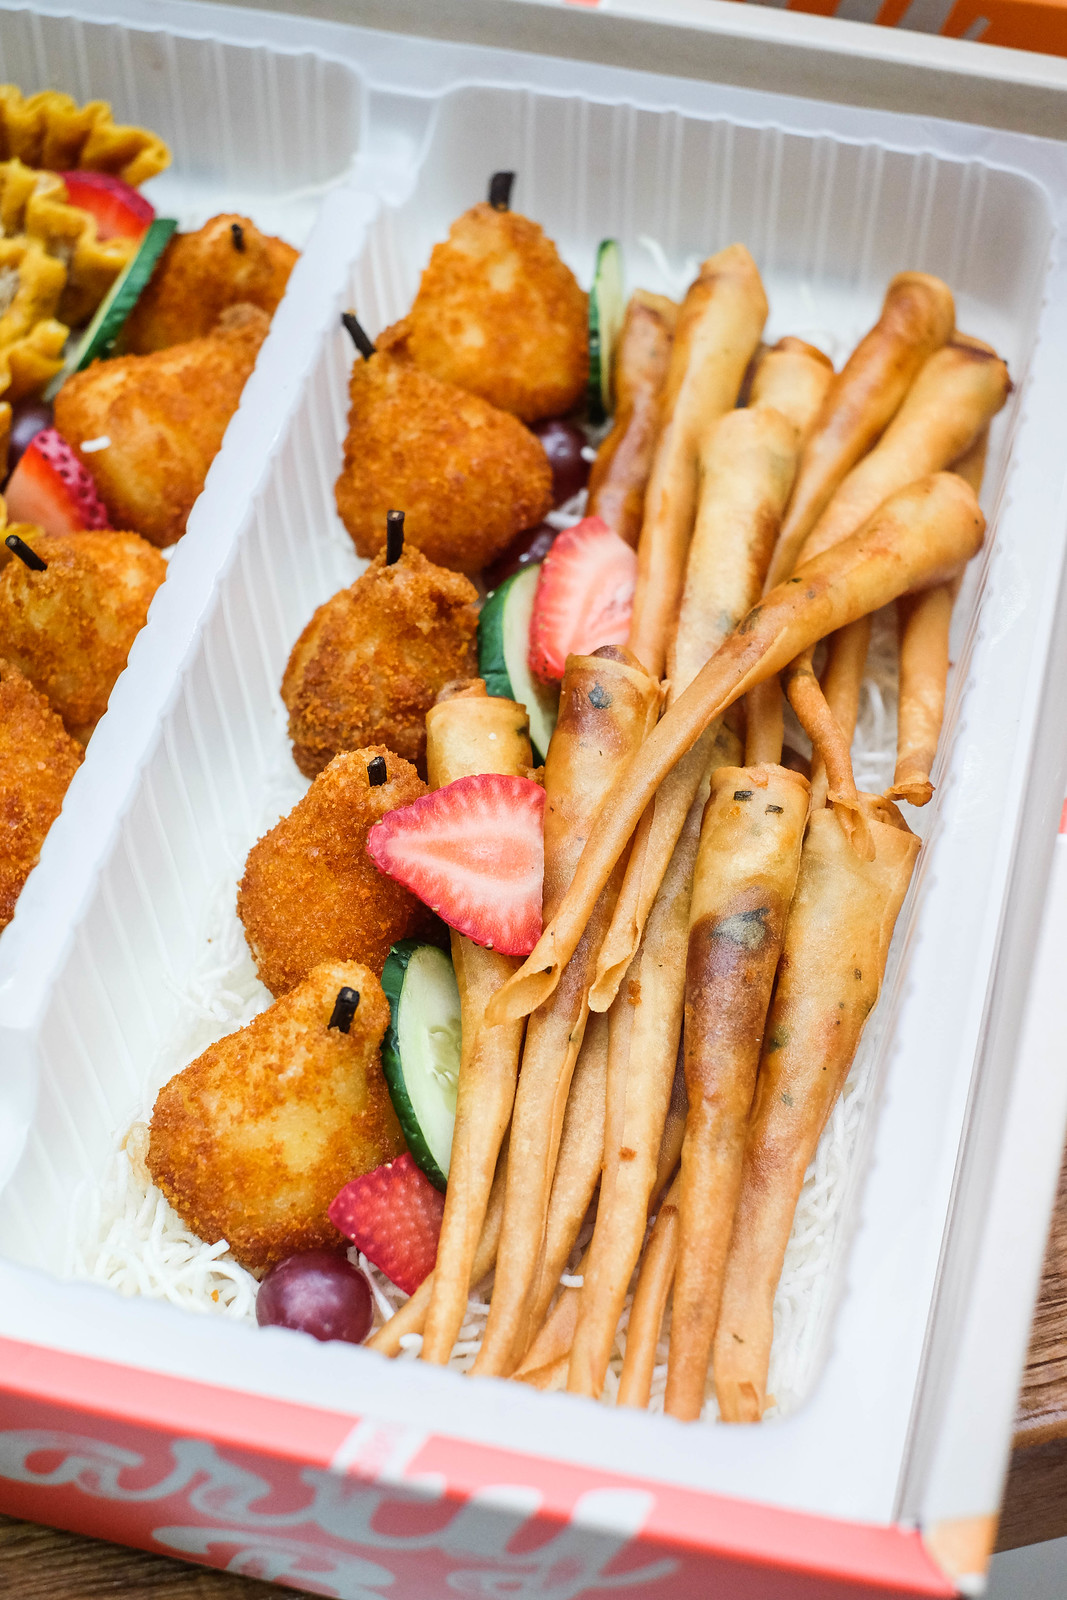 Enjoy a Tea Party with Four Seasons Catering! - Miss Tam Chiak